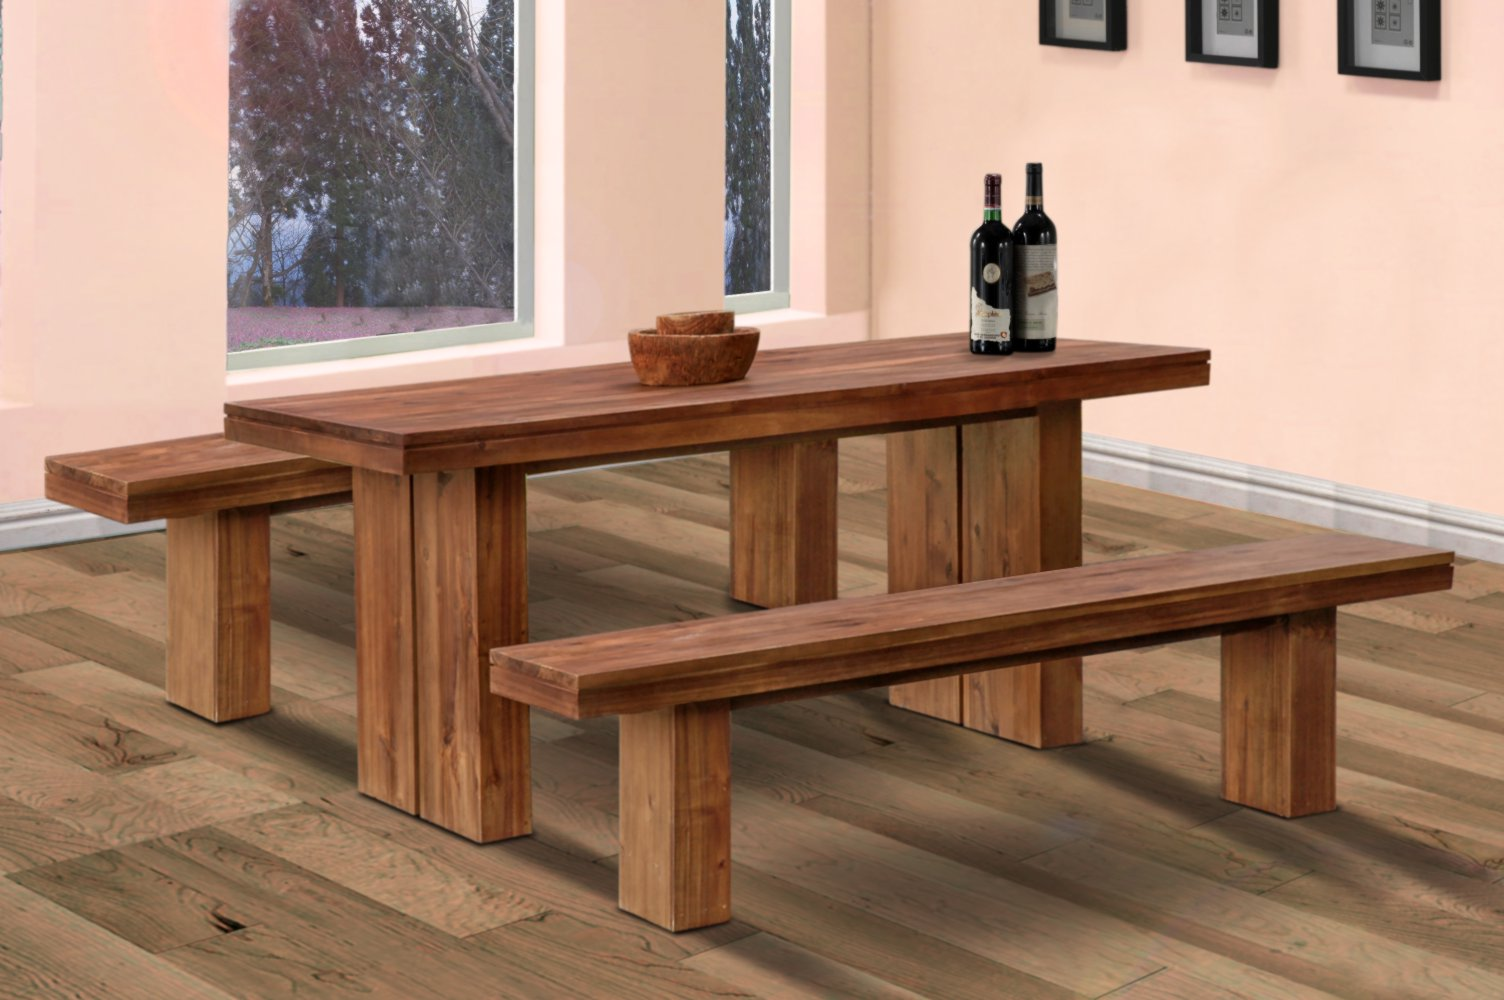 Danielle dining table and bench java valentti for Dining room table and bench